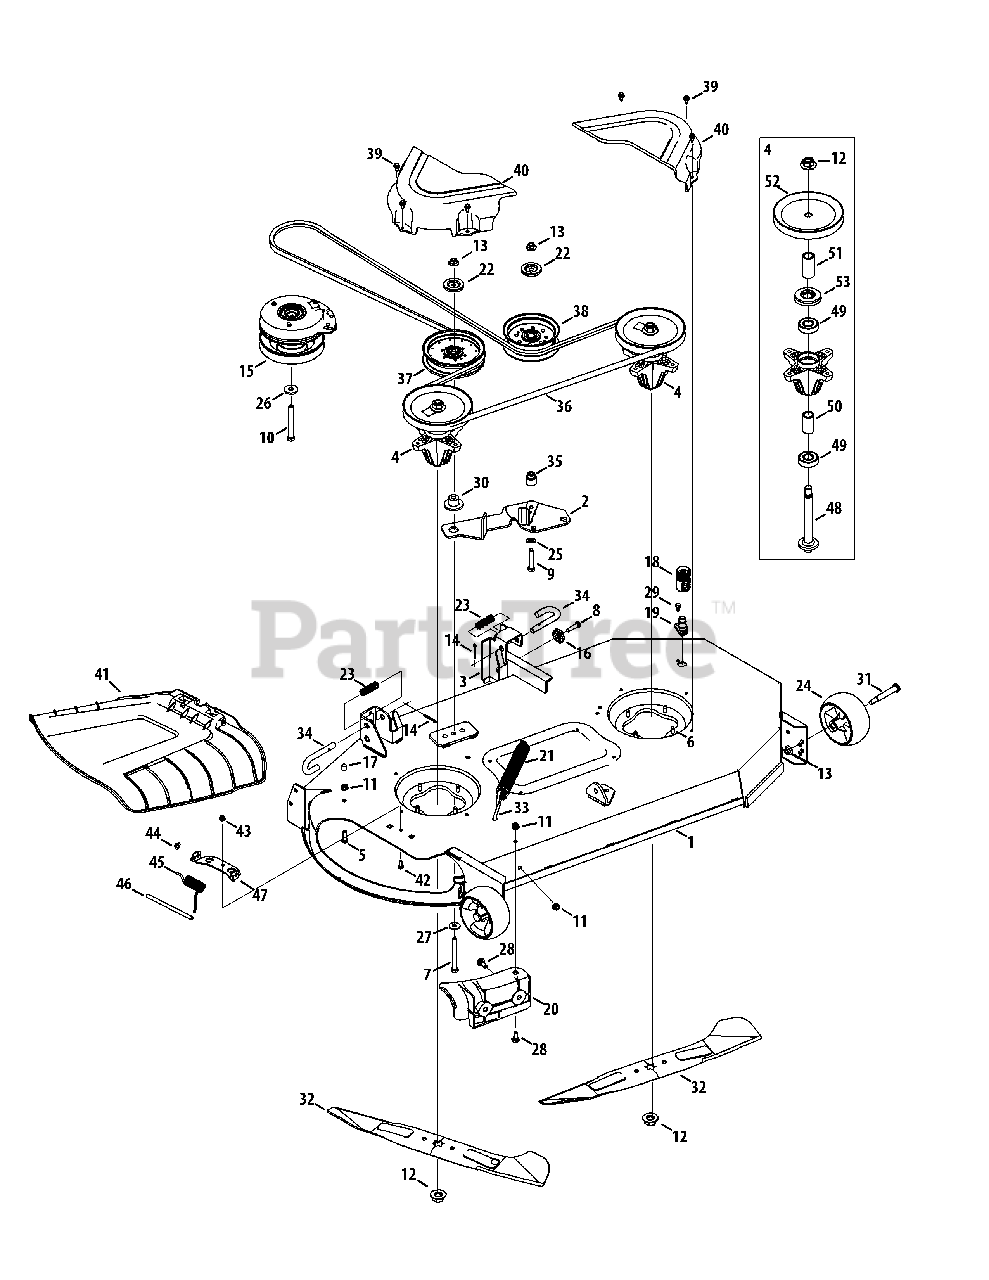 Cub Cadet Parts on the Mower Deck 46-Inch Diagram for RZT